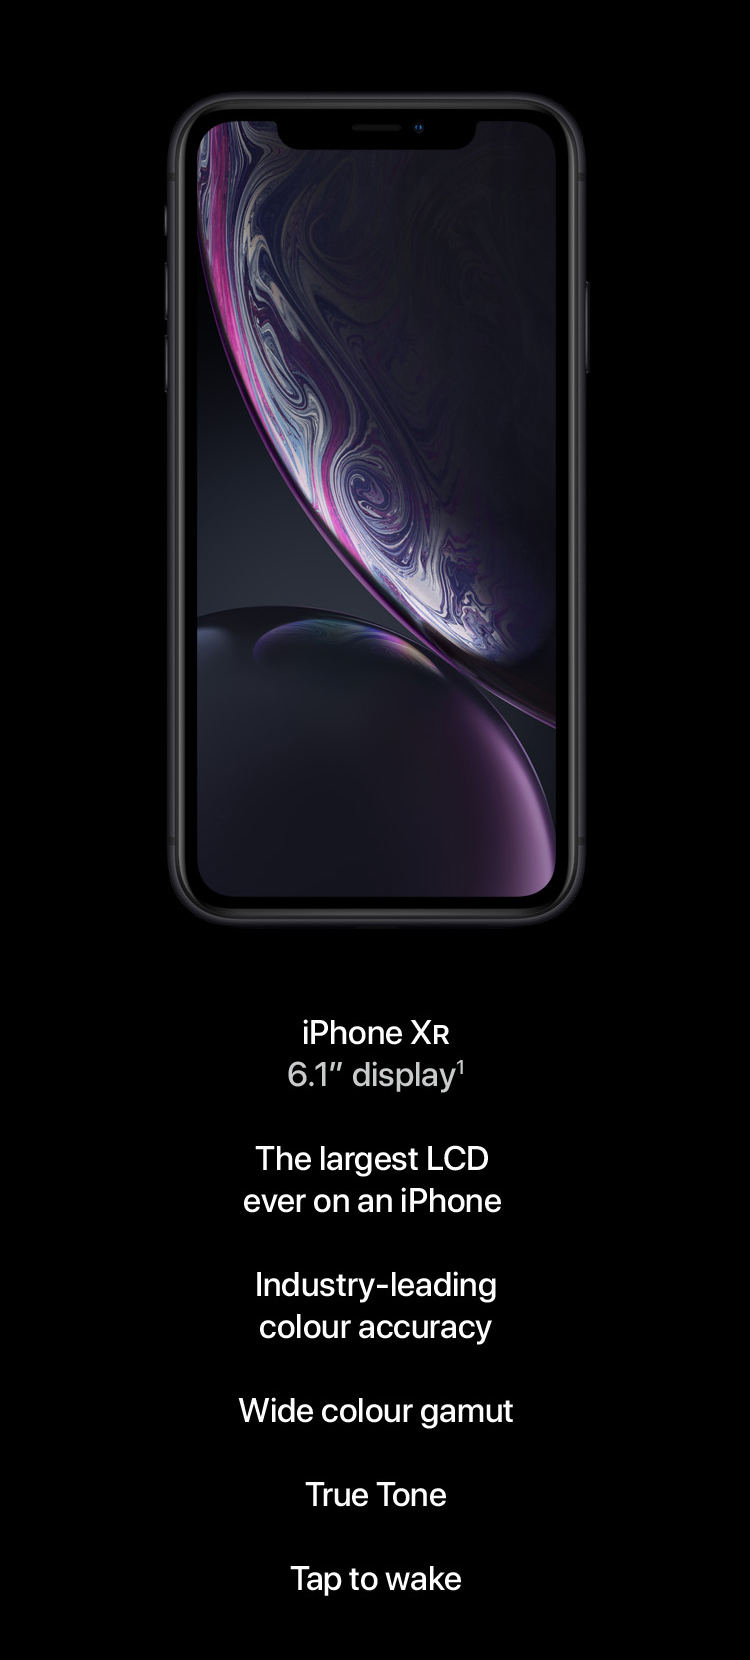 All screen makes all the difference. See how much more room you'll have for everything you love to do. iPhone Xr. iPhone 8 Plus. Exceptional materials. The most durable front glass ever in a smartphone. Precision-machined, aerospace-grade aluminium bands. Water and dust resistance. And six stunning new finishes.